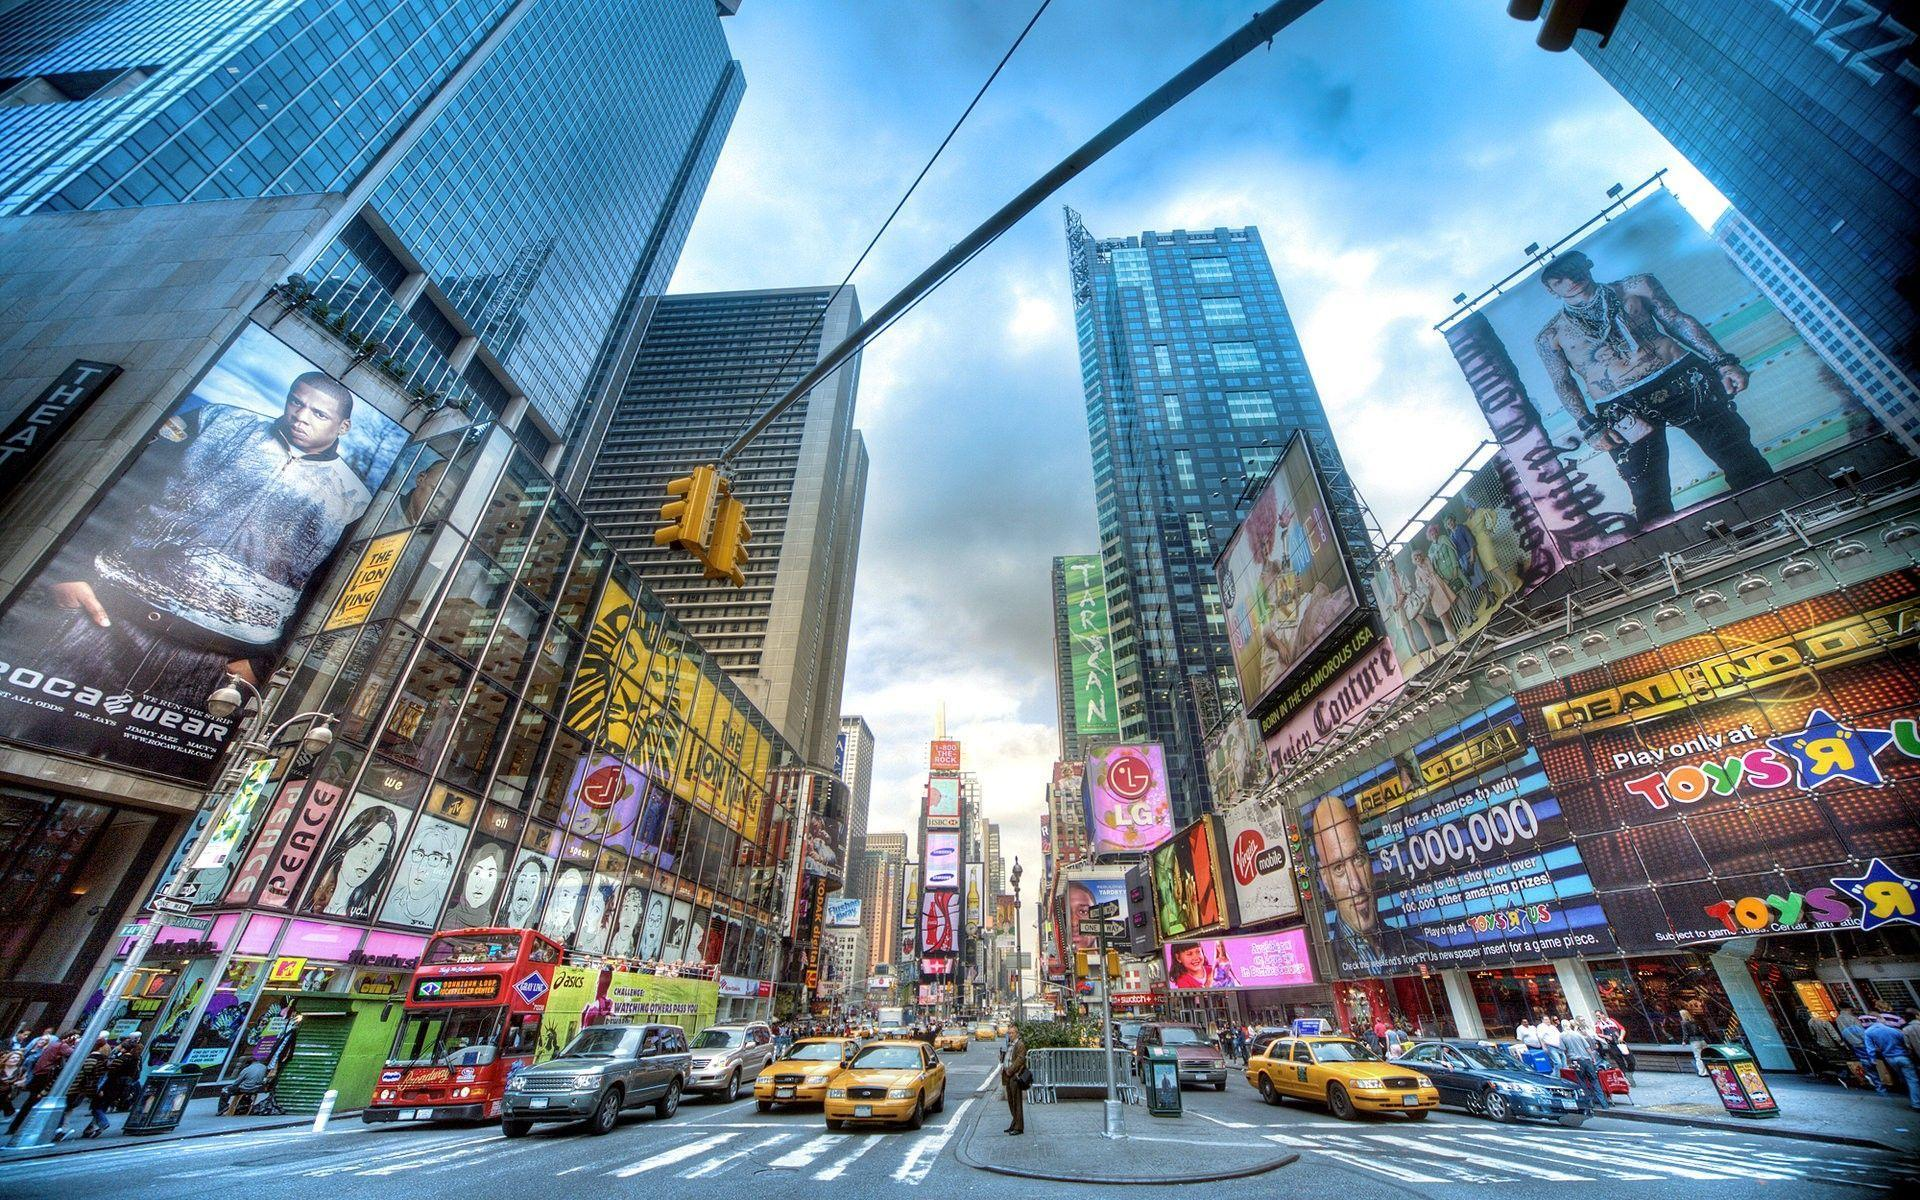 Times Square wallpaper - 1033719